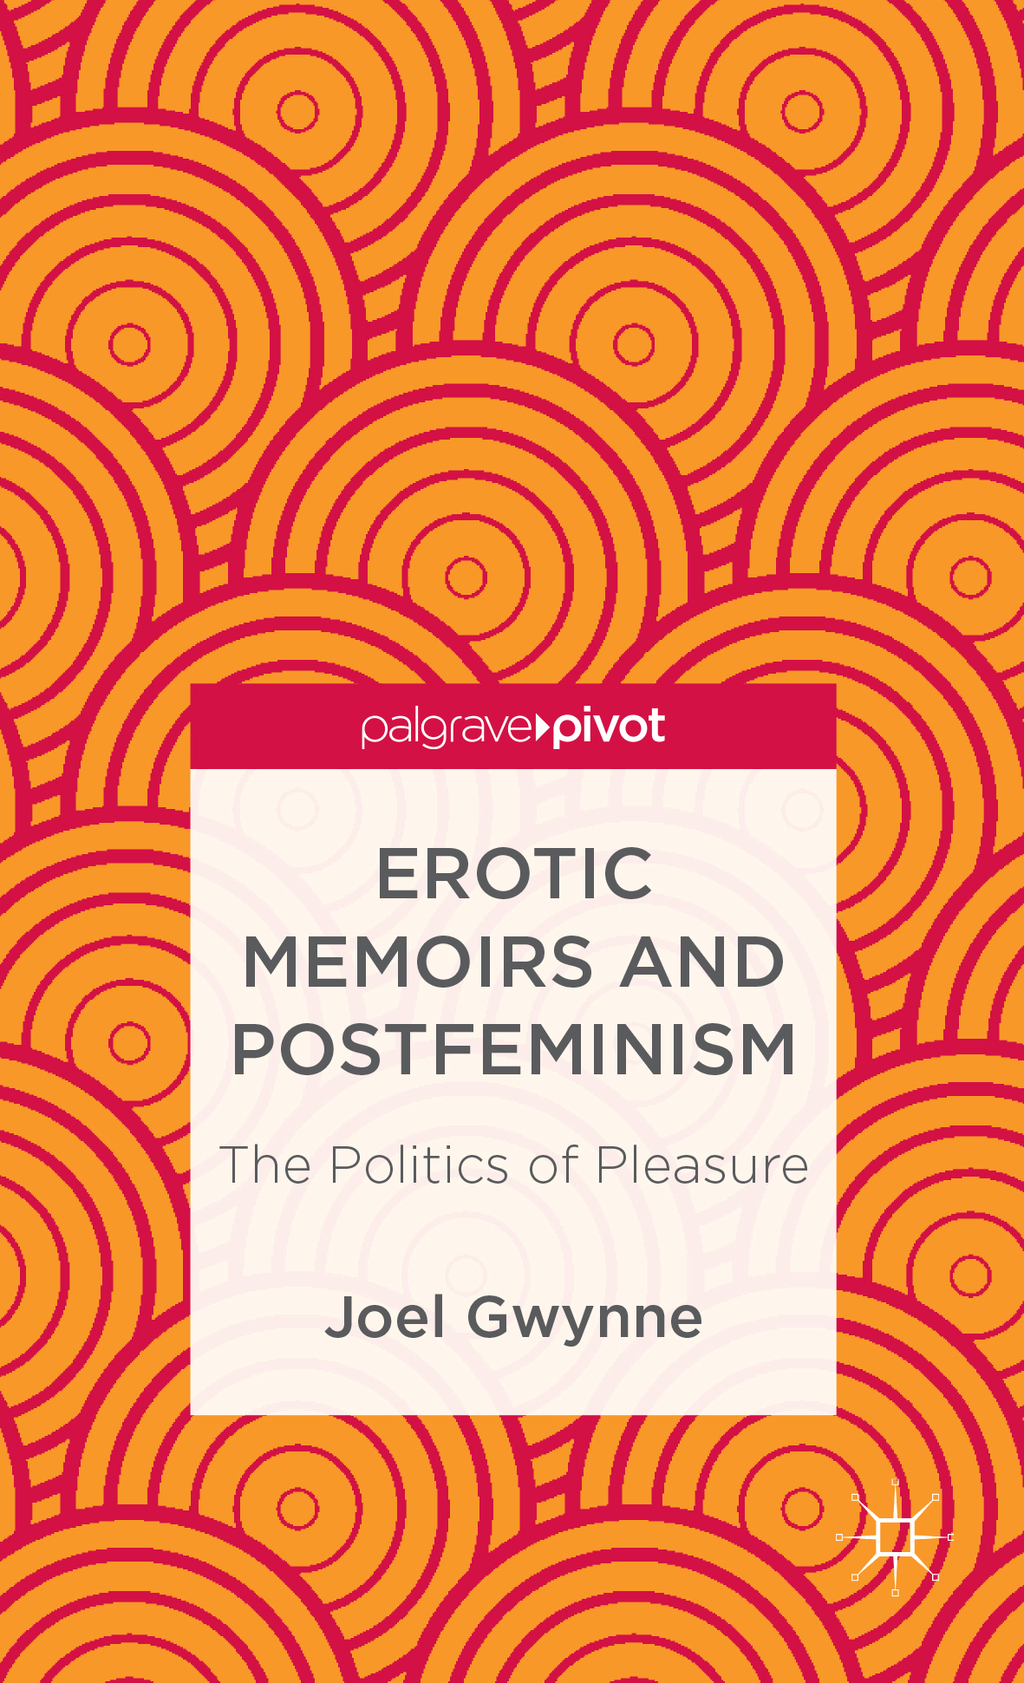 Erotic Memoirs and Postfeminism The Politics of Pleasure